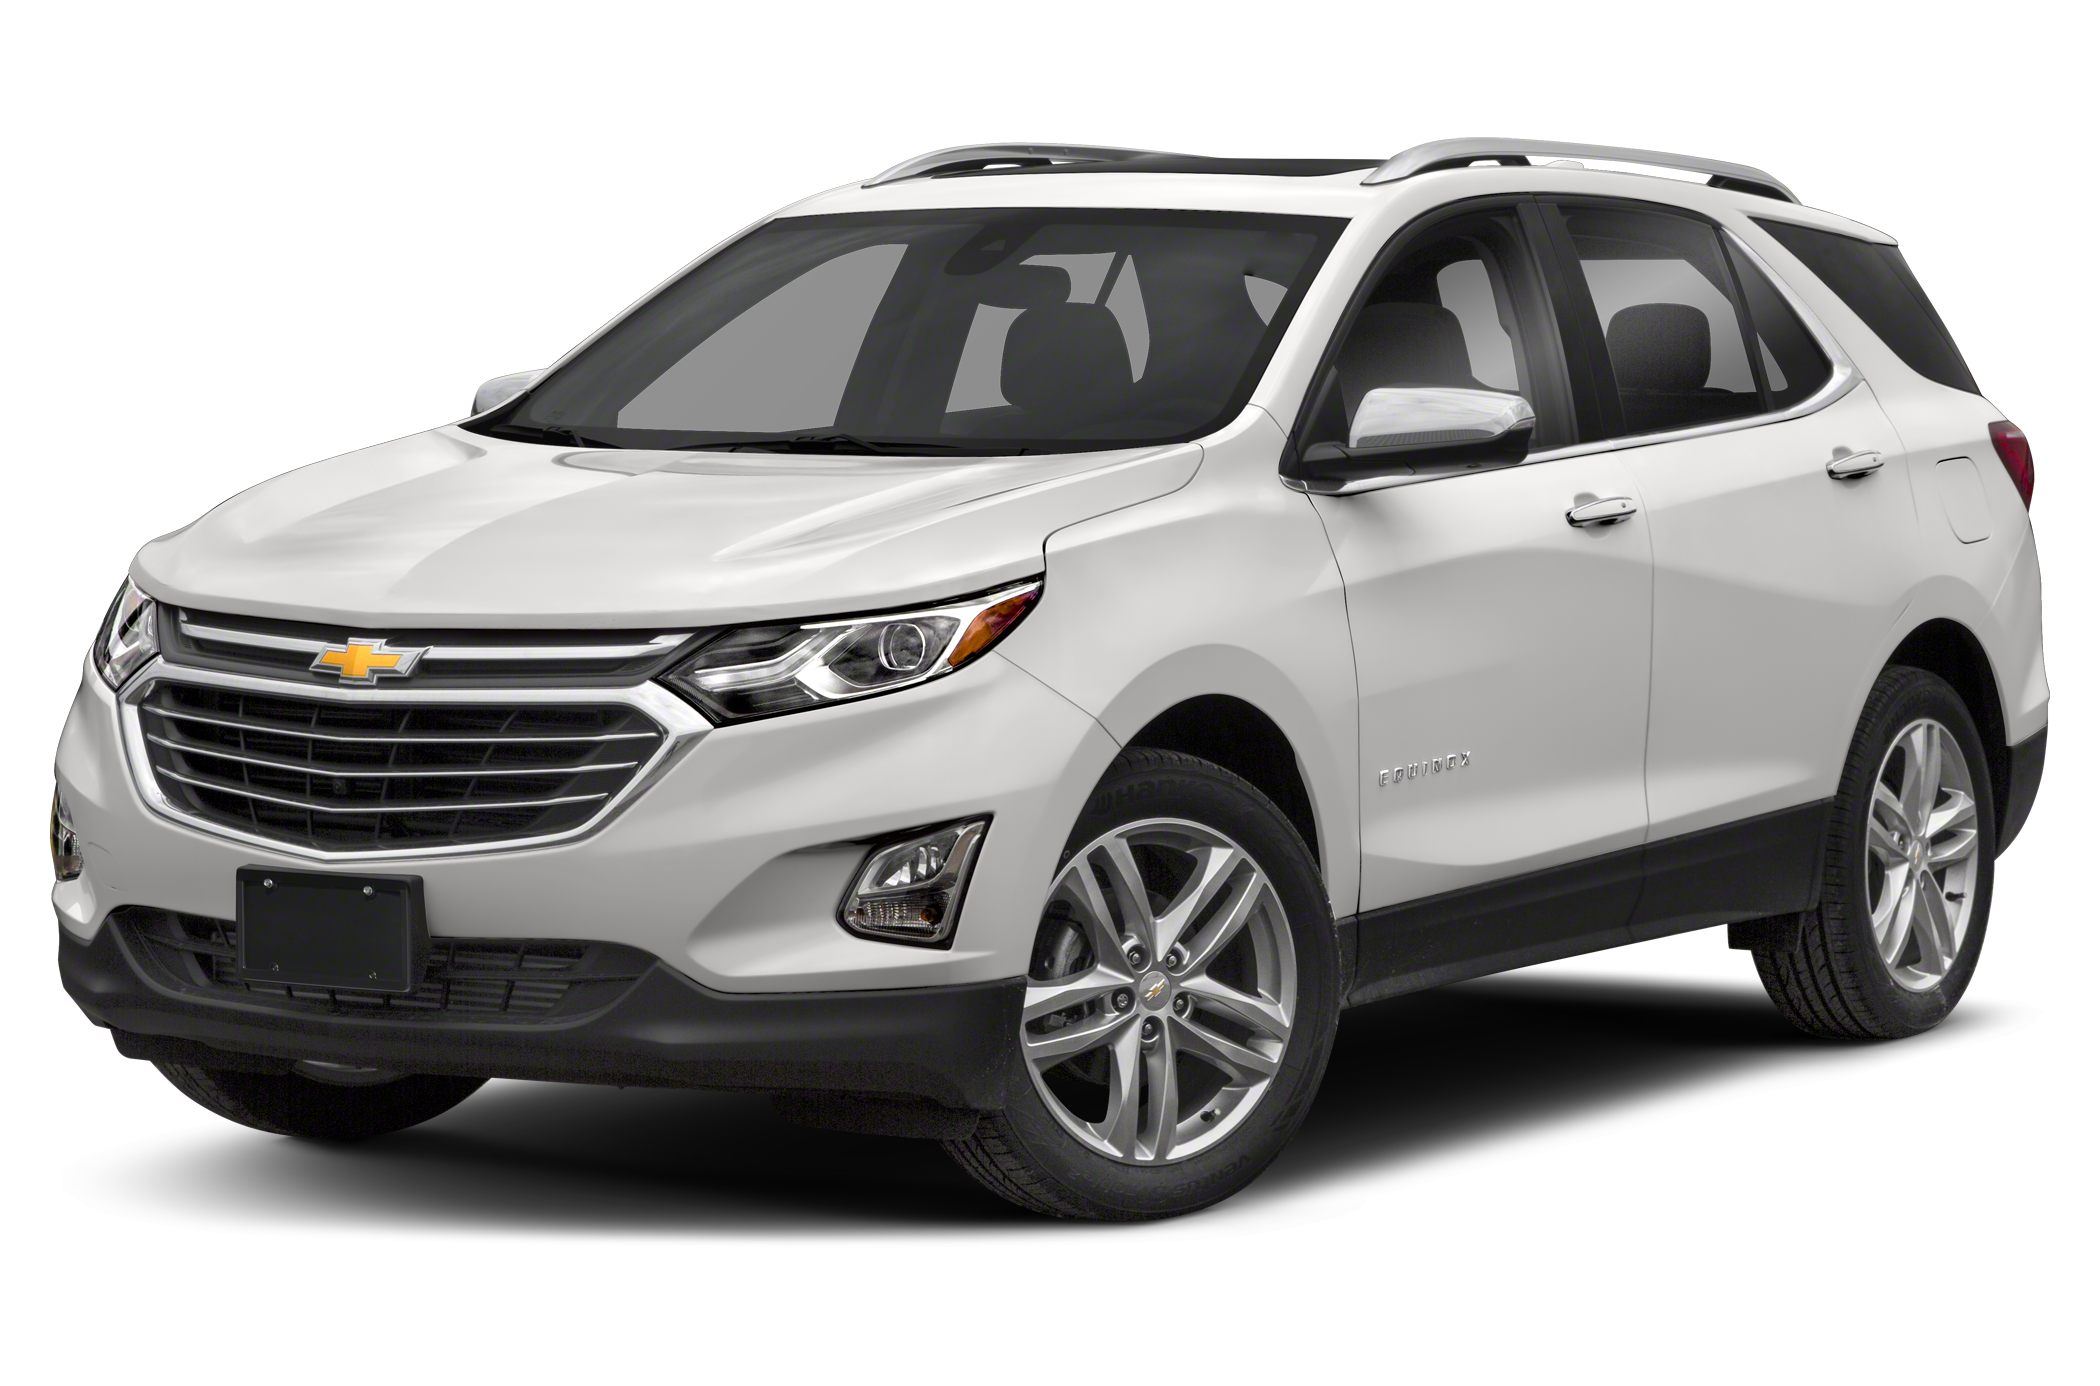 2018 Chevrolet Equinox Premier w/1LZ All-wheel Drive